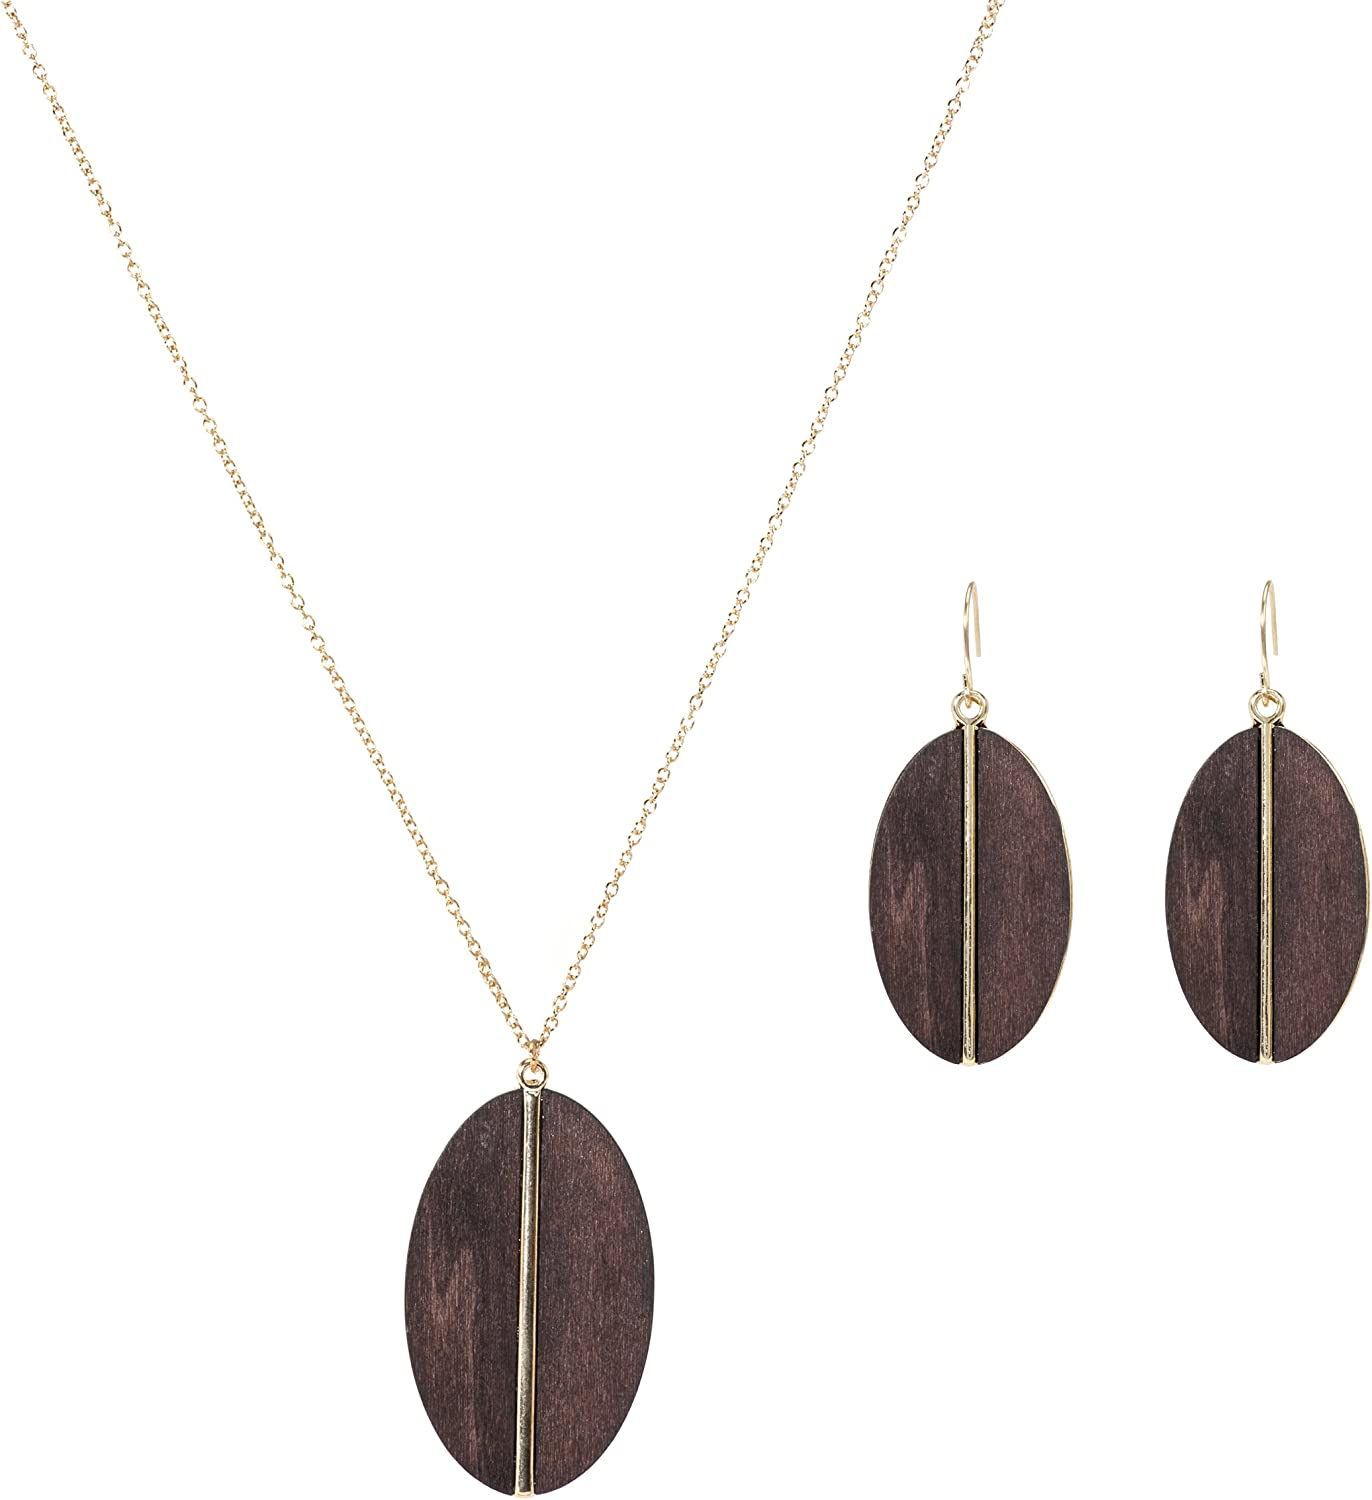 Lova Jewelry Oval Wood Charm Gold Tone Chain Necklace and Earrings – Set of Two